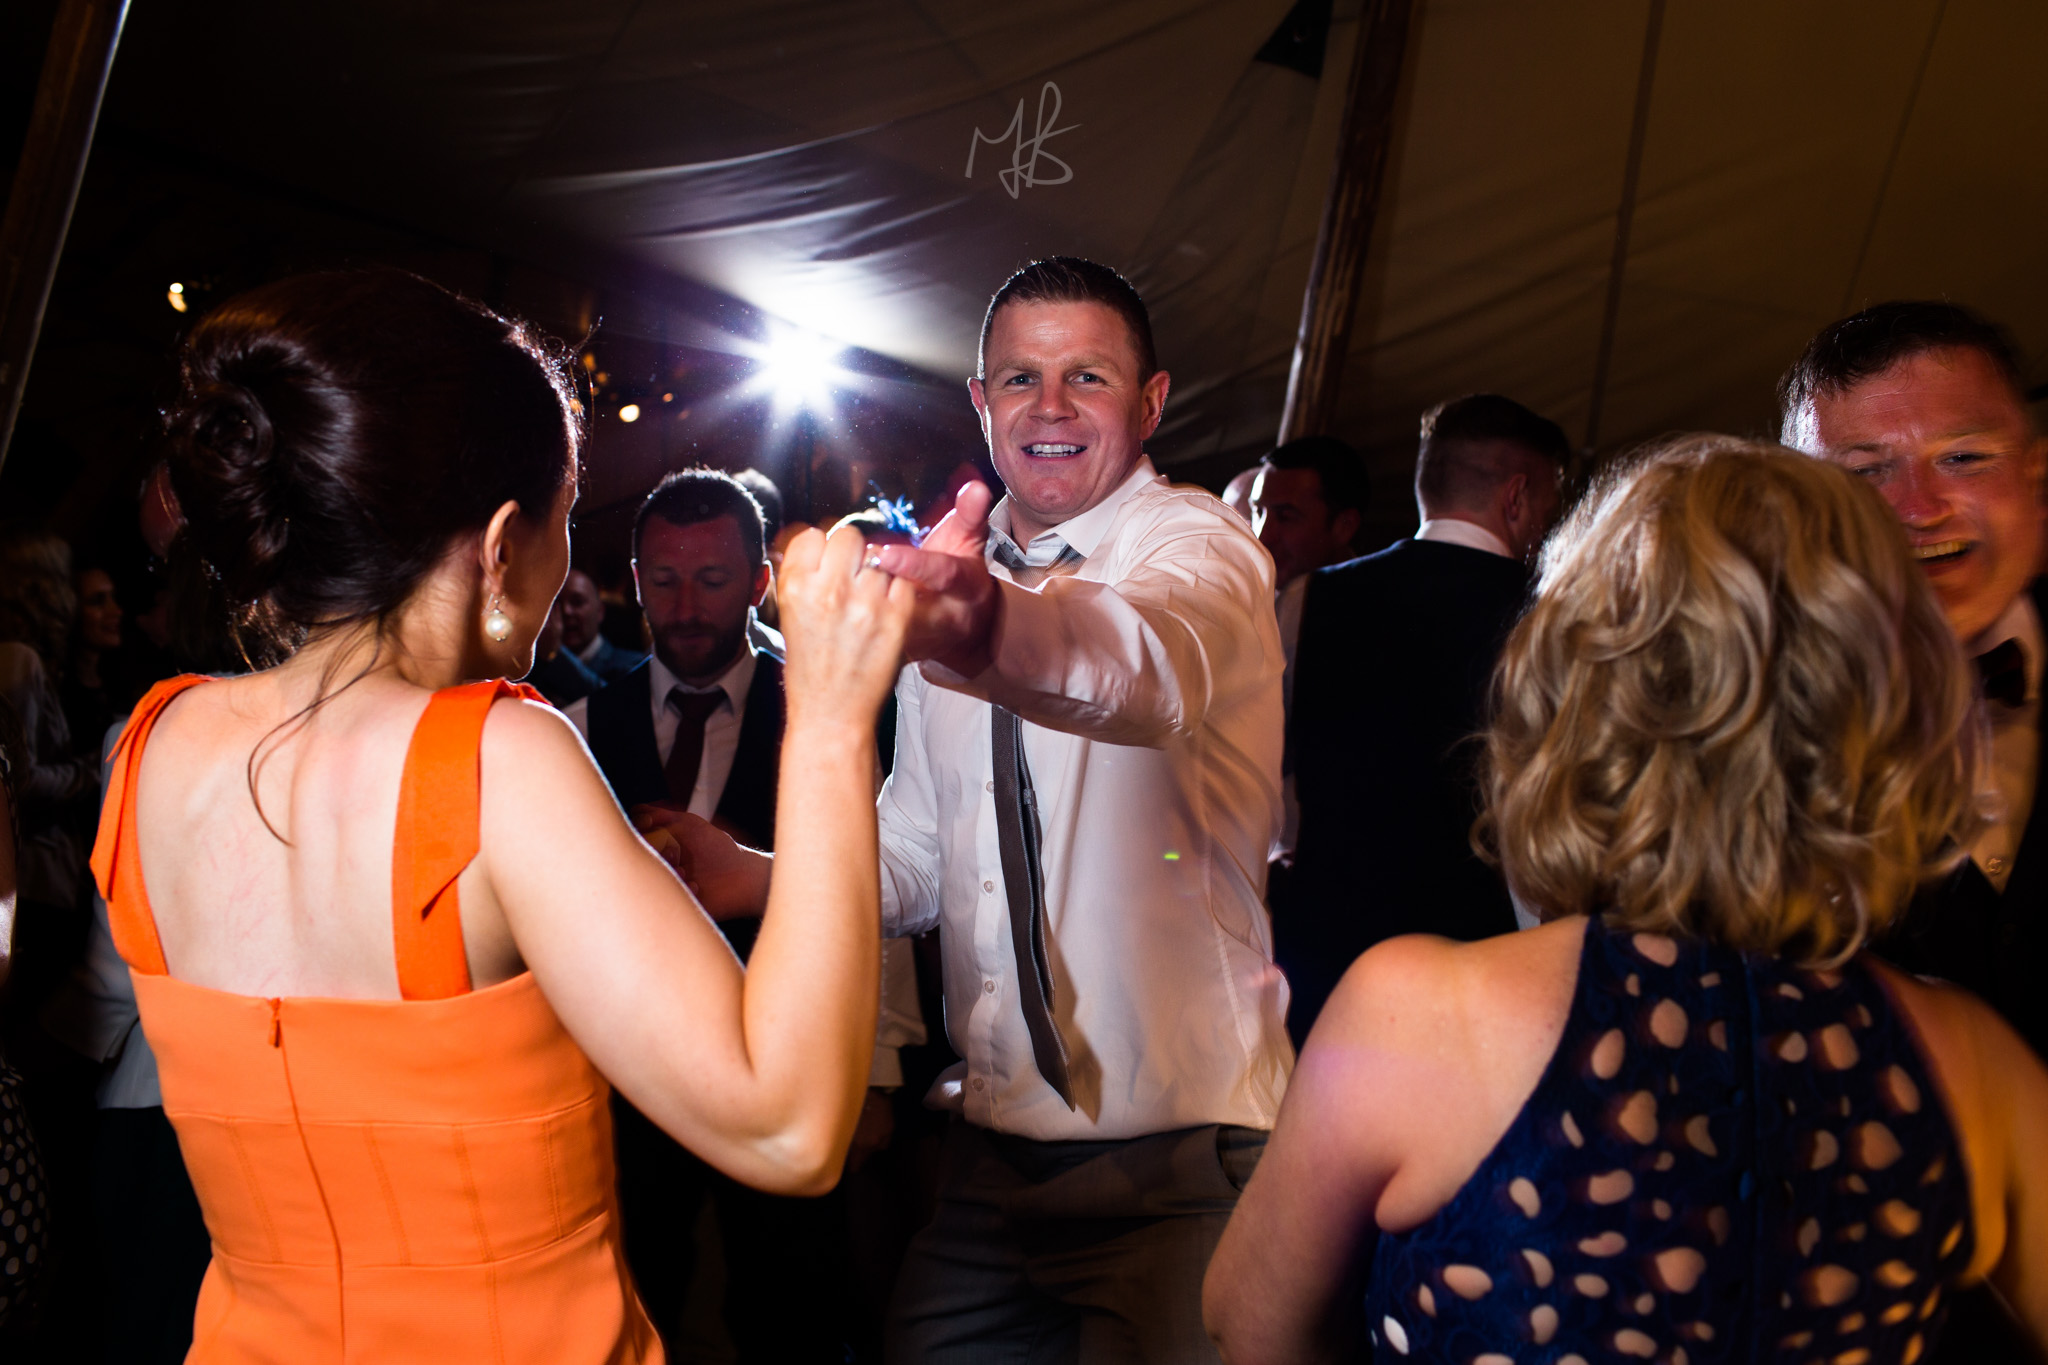 Northern_Ireland_Wedding-Photographer-Mark-Barnes-Newry_wedding_Photography-Katie&Darren-99.jpg